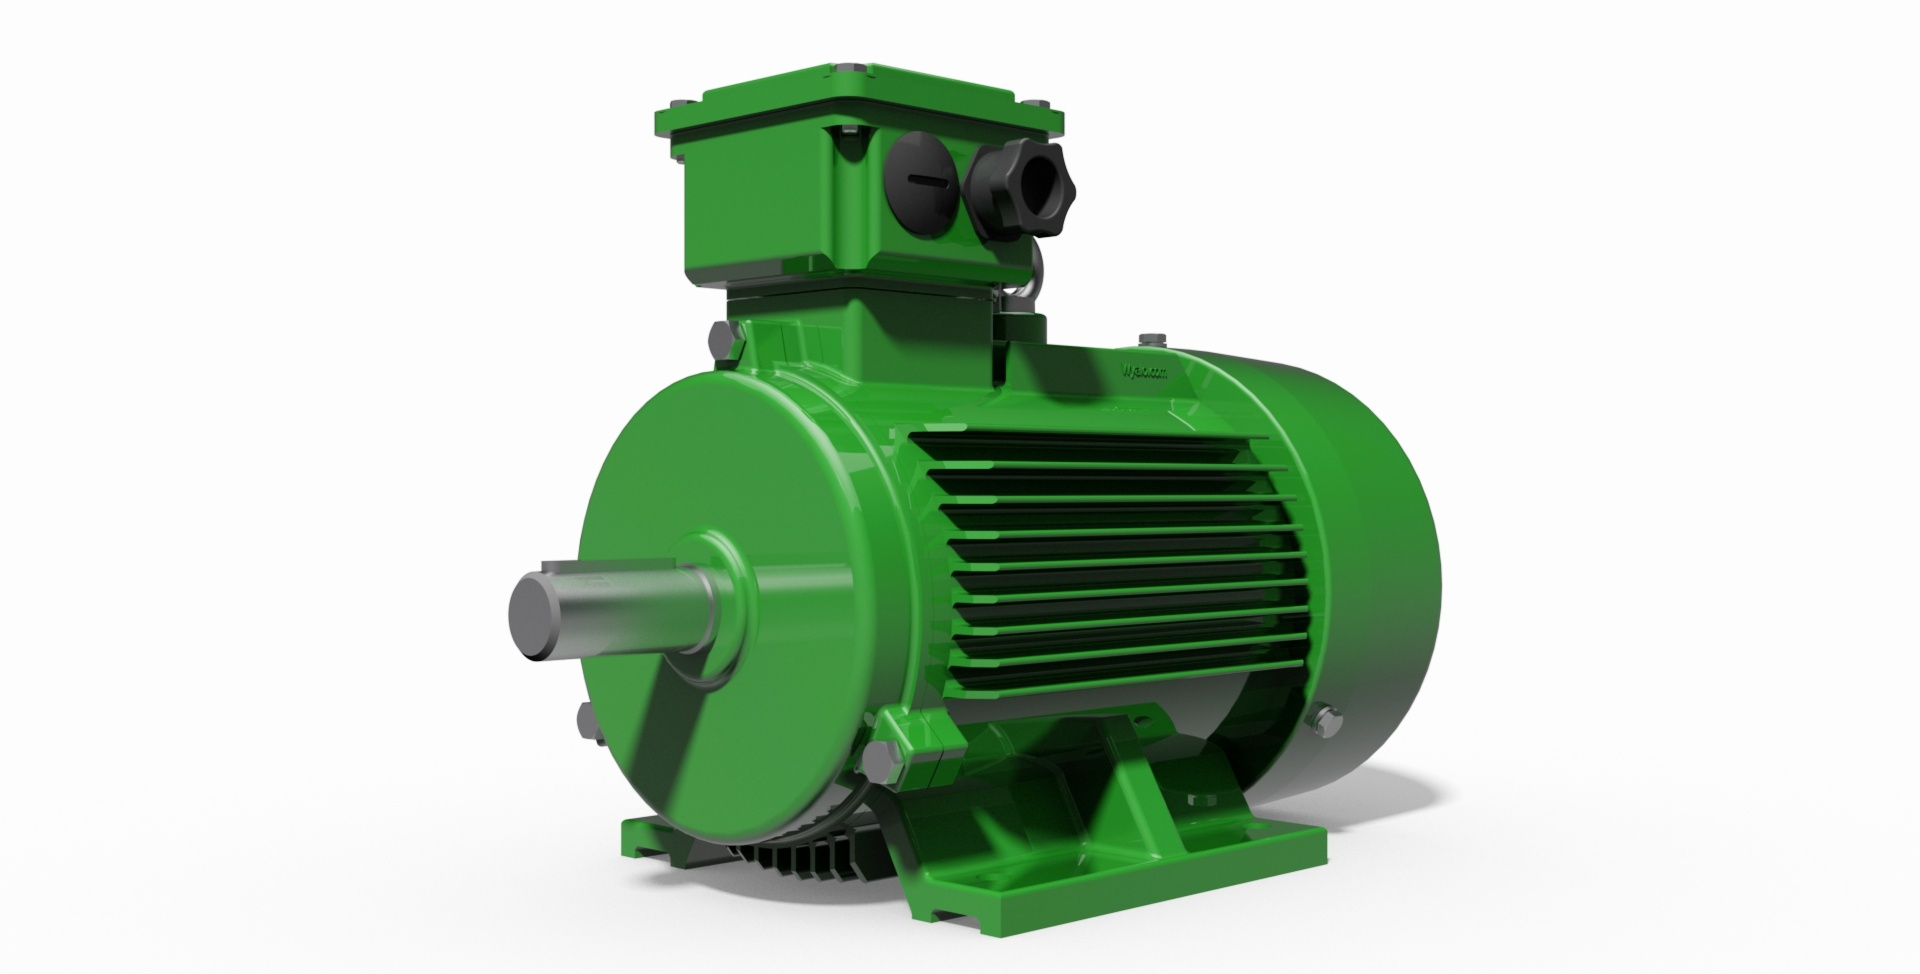 B35 Motor additionally Autodesk 360 Fusion also B35 Motor also 3hZ7 besides Im B3 Motor Mounting. on electric motors b3 foot mount 3d cad models